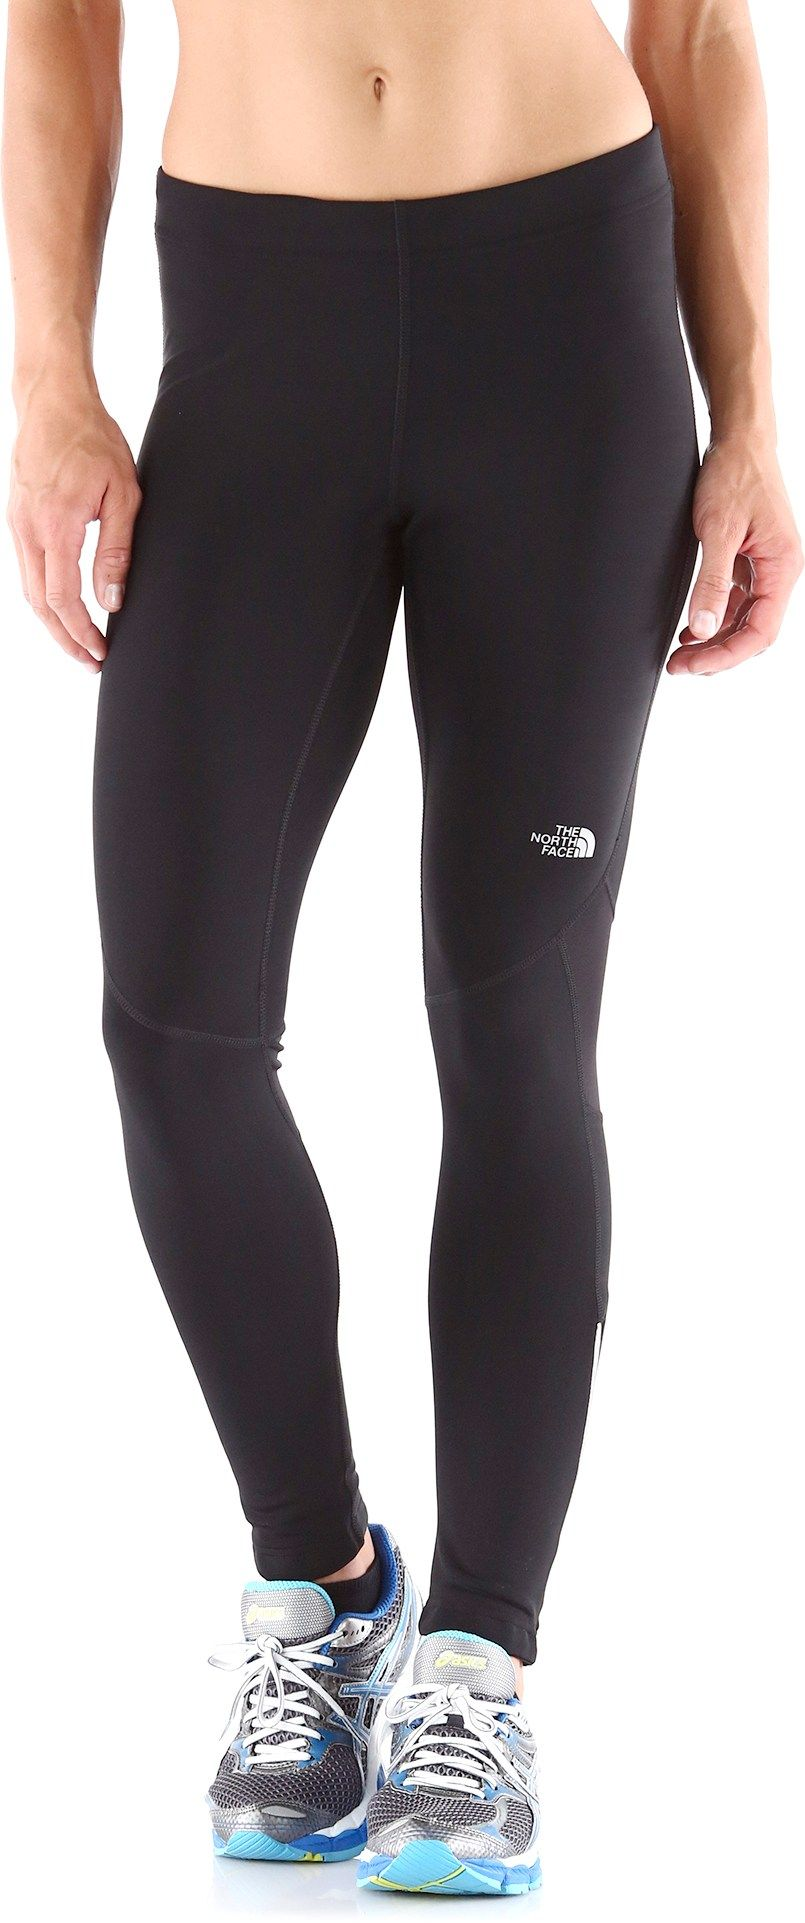 0bfc763f3d508 The North Face Winter Warm Tights - Women's | REI Co-op | Winter ...